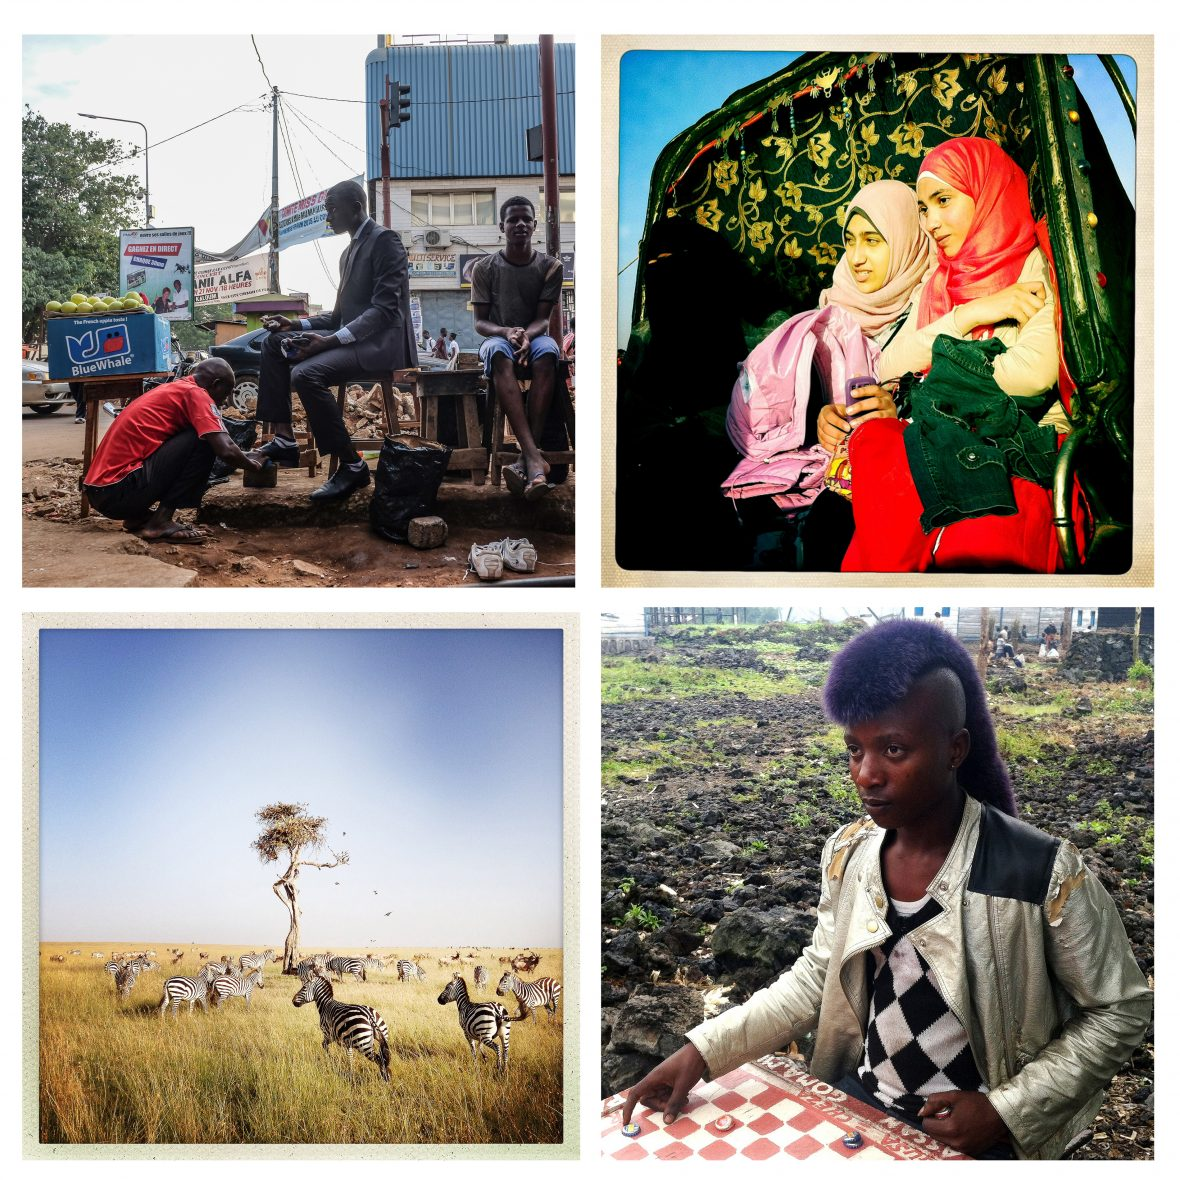 Instagram images from some of the Everyday Africa contributors